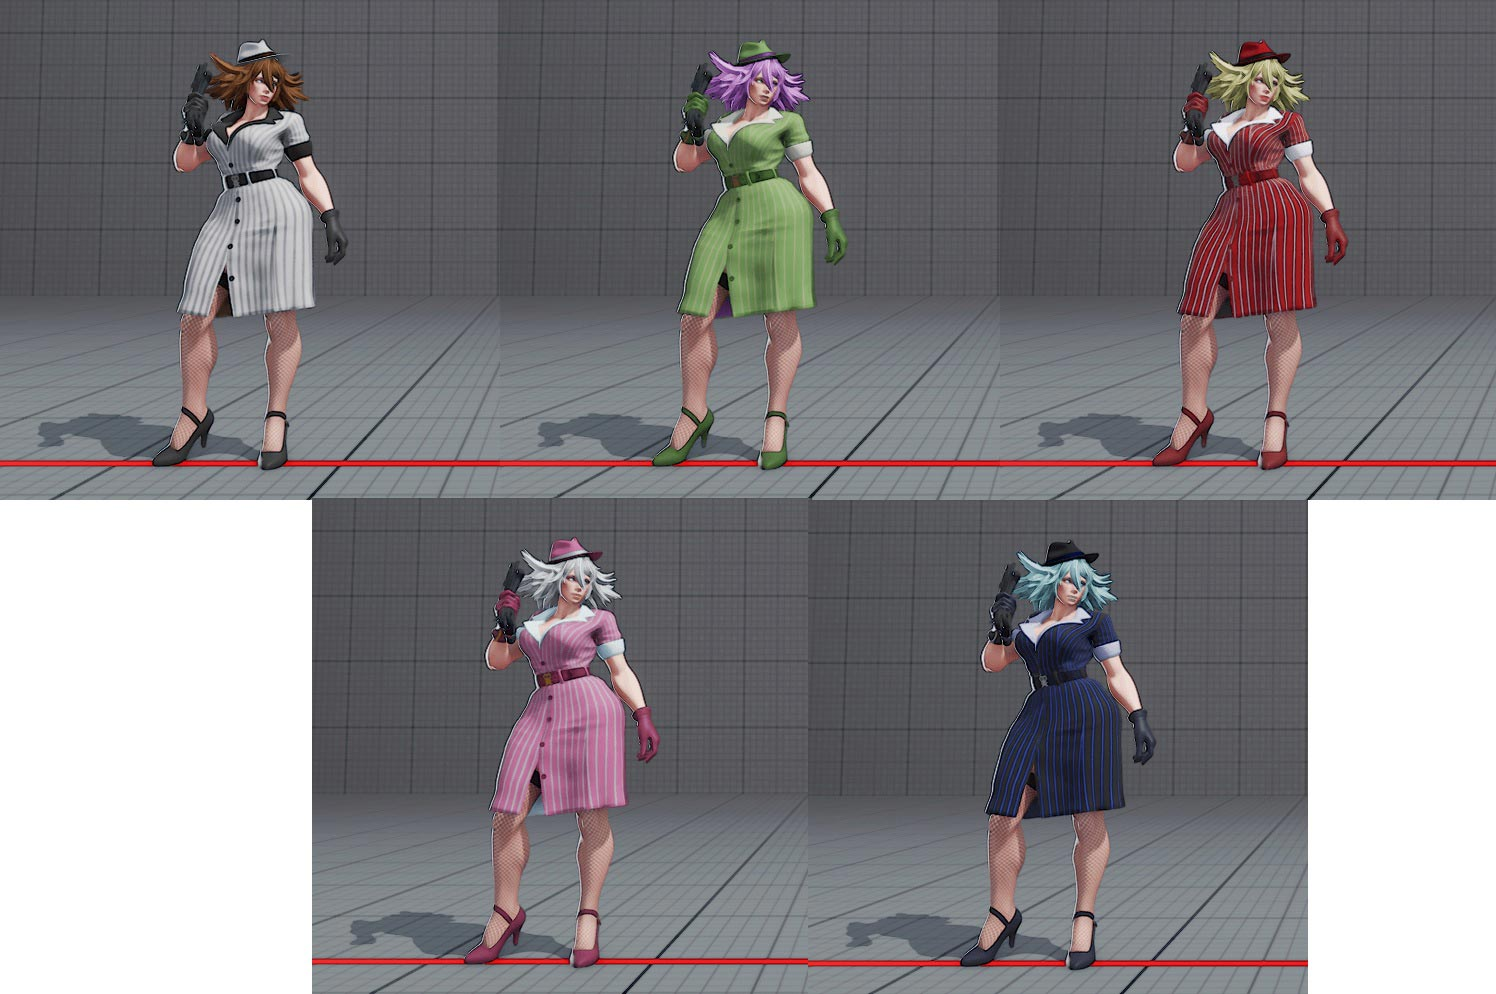 Poison's costume colors in Street Fighter 5 12 out of 22 image gallery